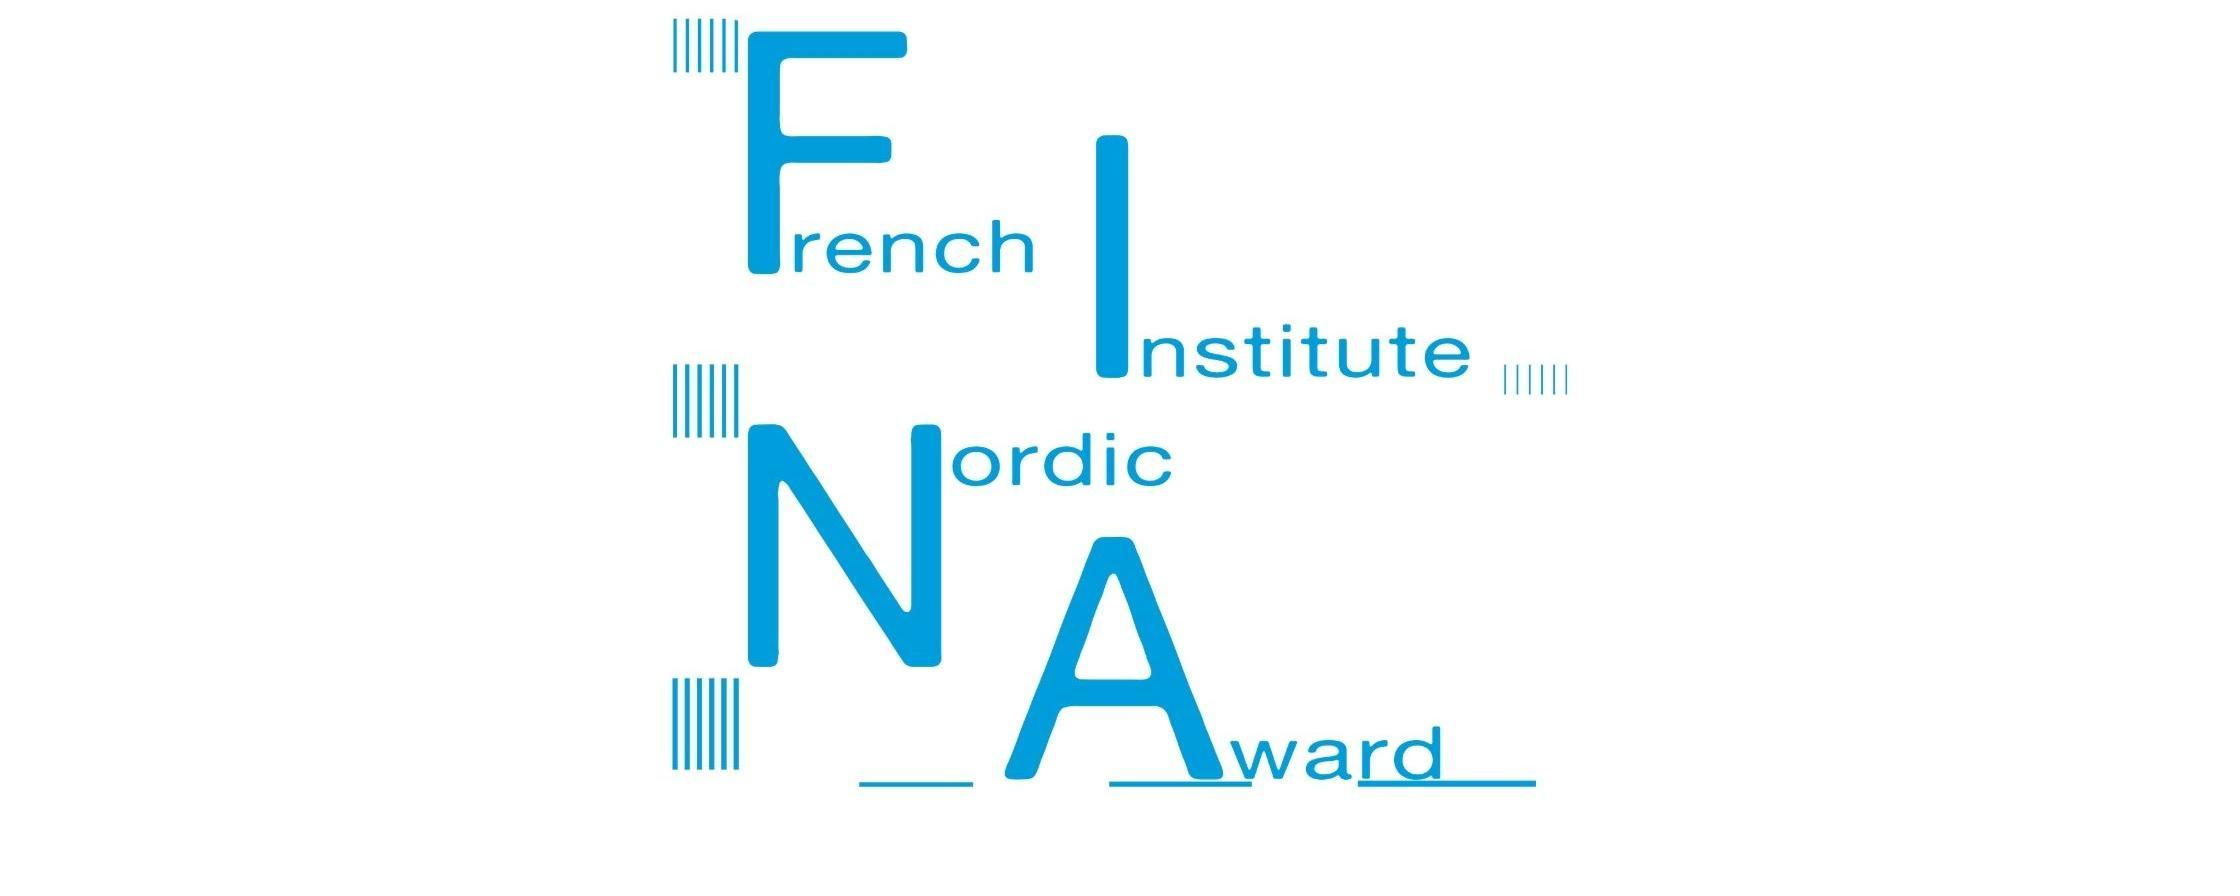 French Institute Nordic Award